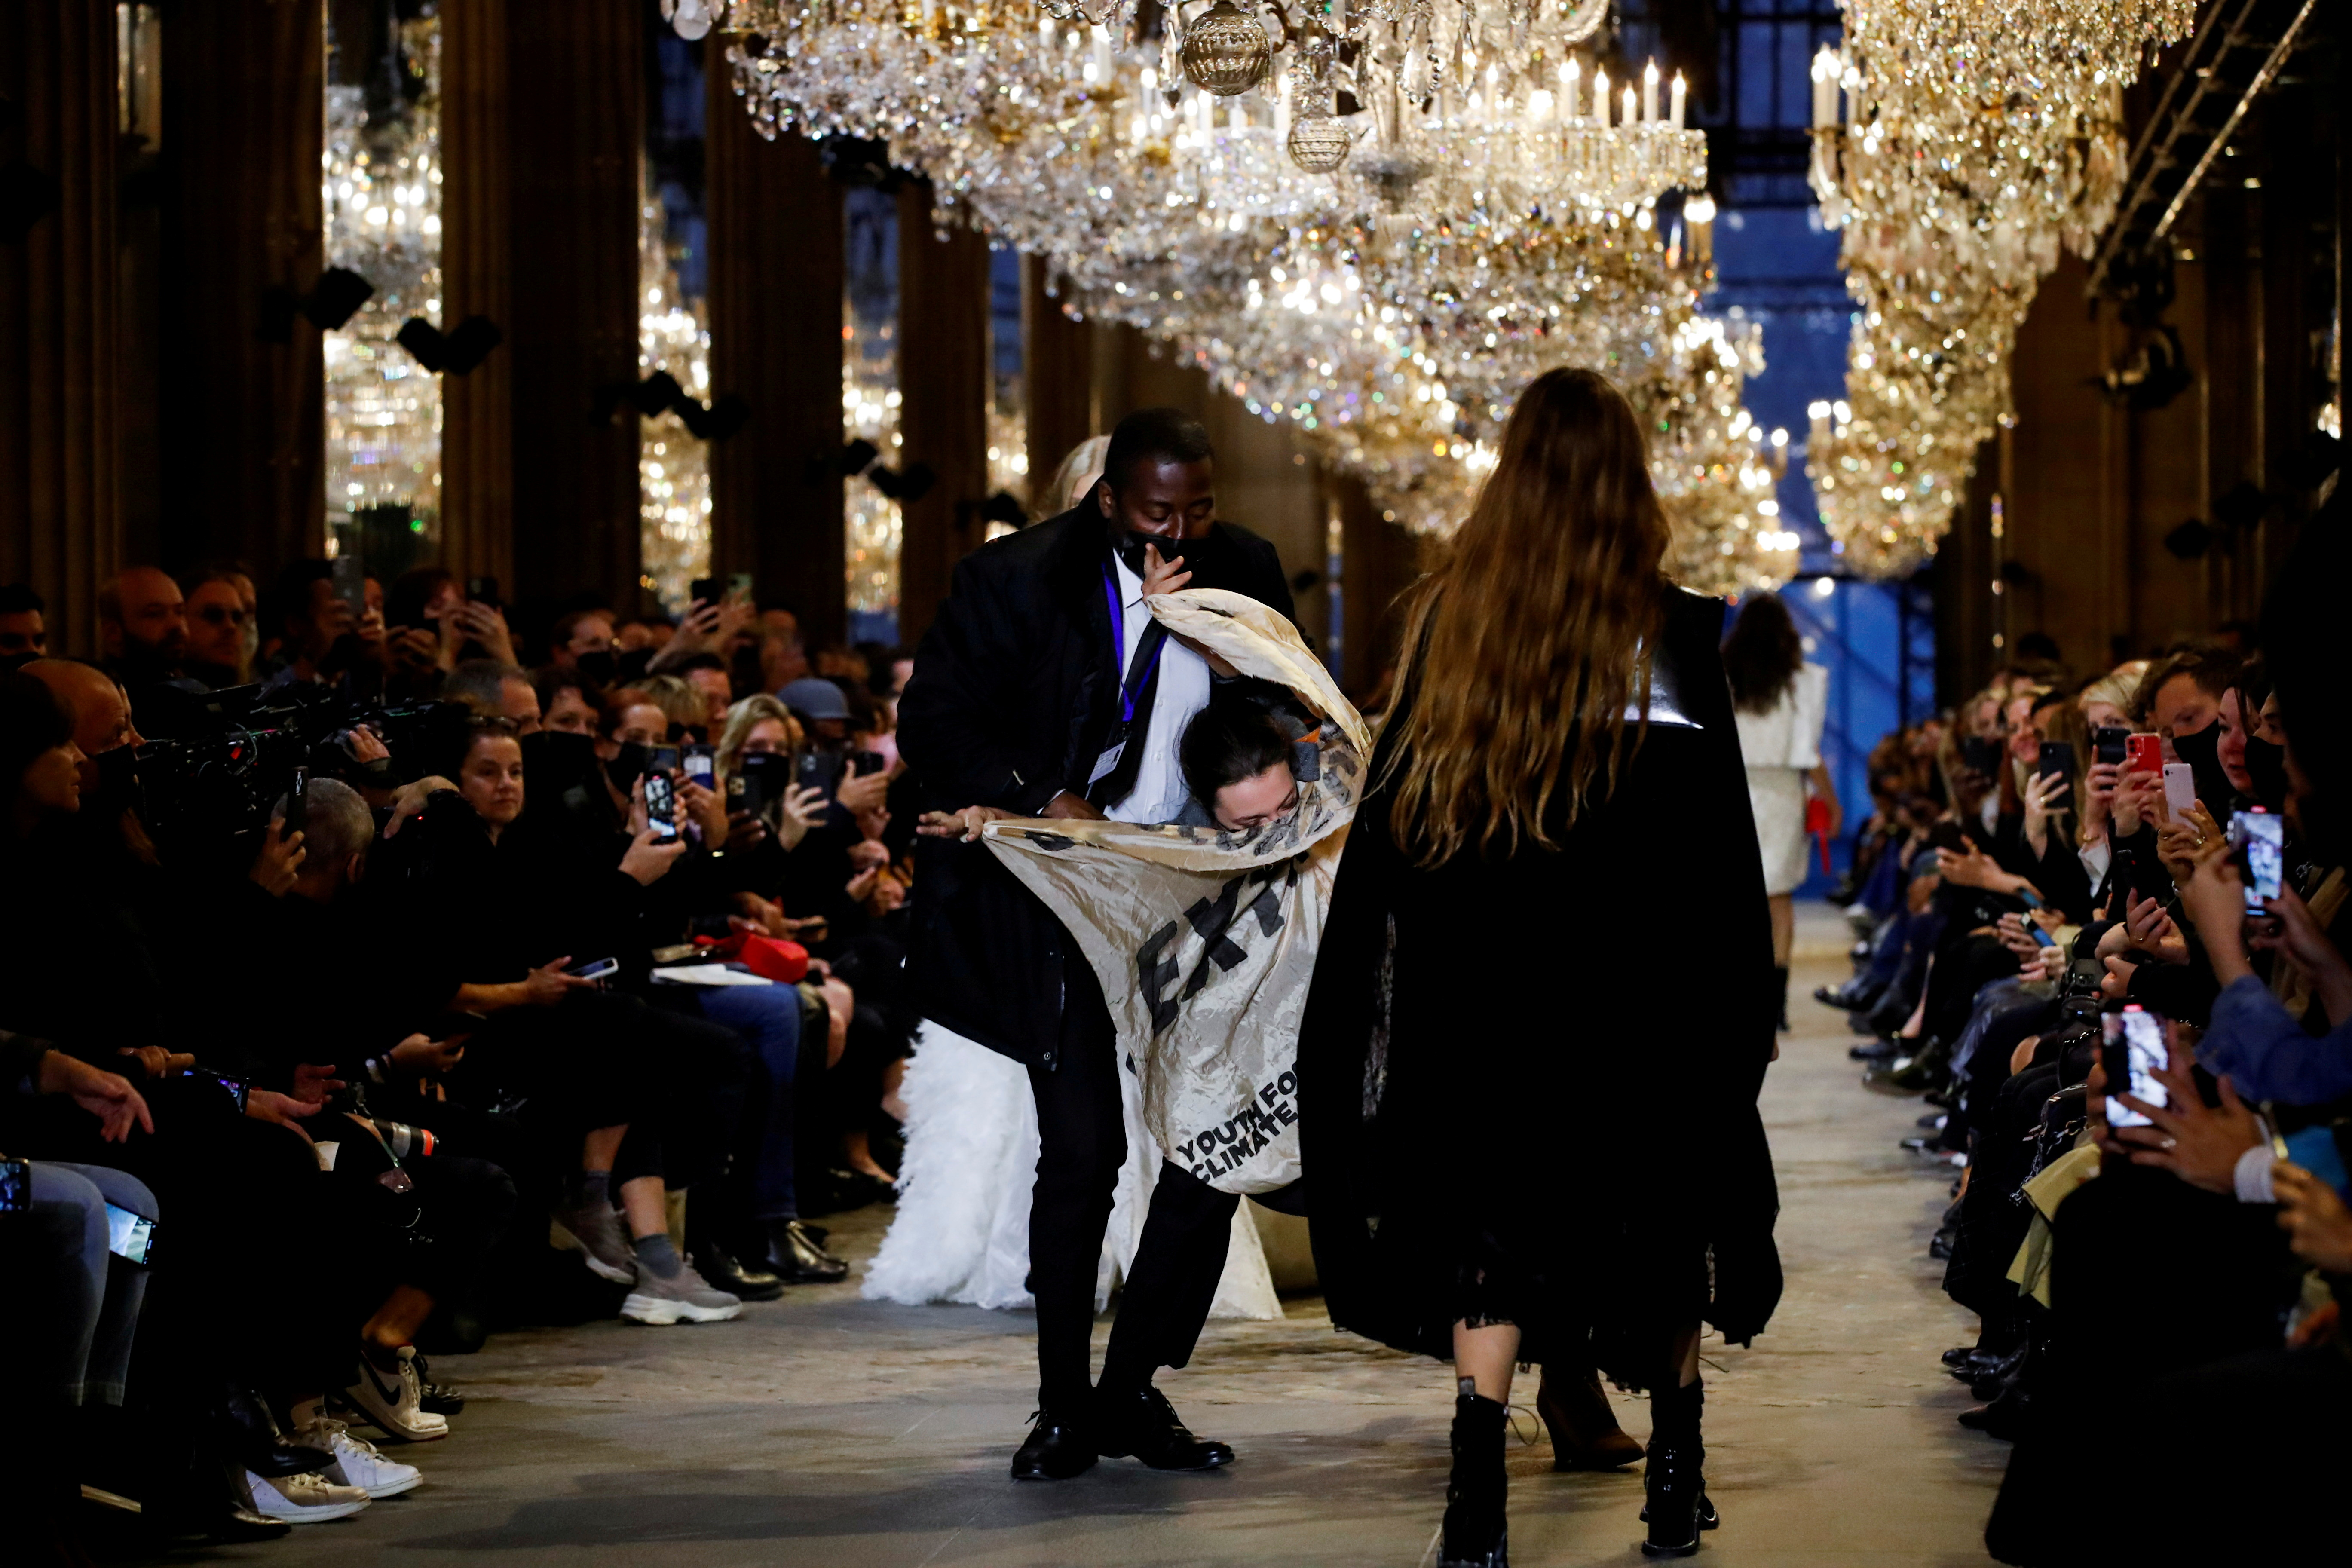 A member of the security personnel removes an activist belonging to the 'Les Amis de la Terre France' or 'Friends of the Earth - France' , who crashed the designer Nicolas Ghesquiere Spring/Summer 2022 women's ready-to-wear collection show for fashion house Louis Vuitton during Paris Fashion Week in Paris, France, October 5, 2021. REUTERS/Gonzalo Fuentes